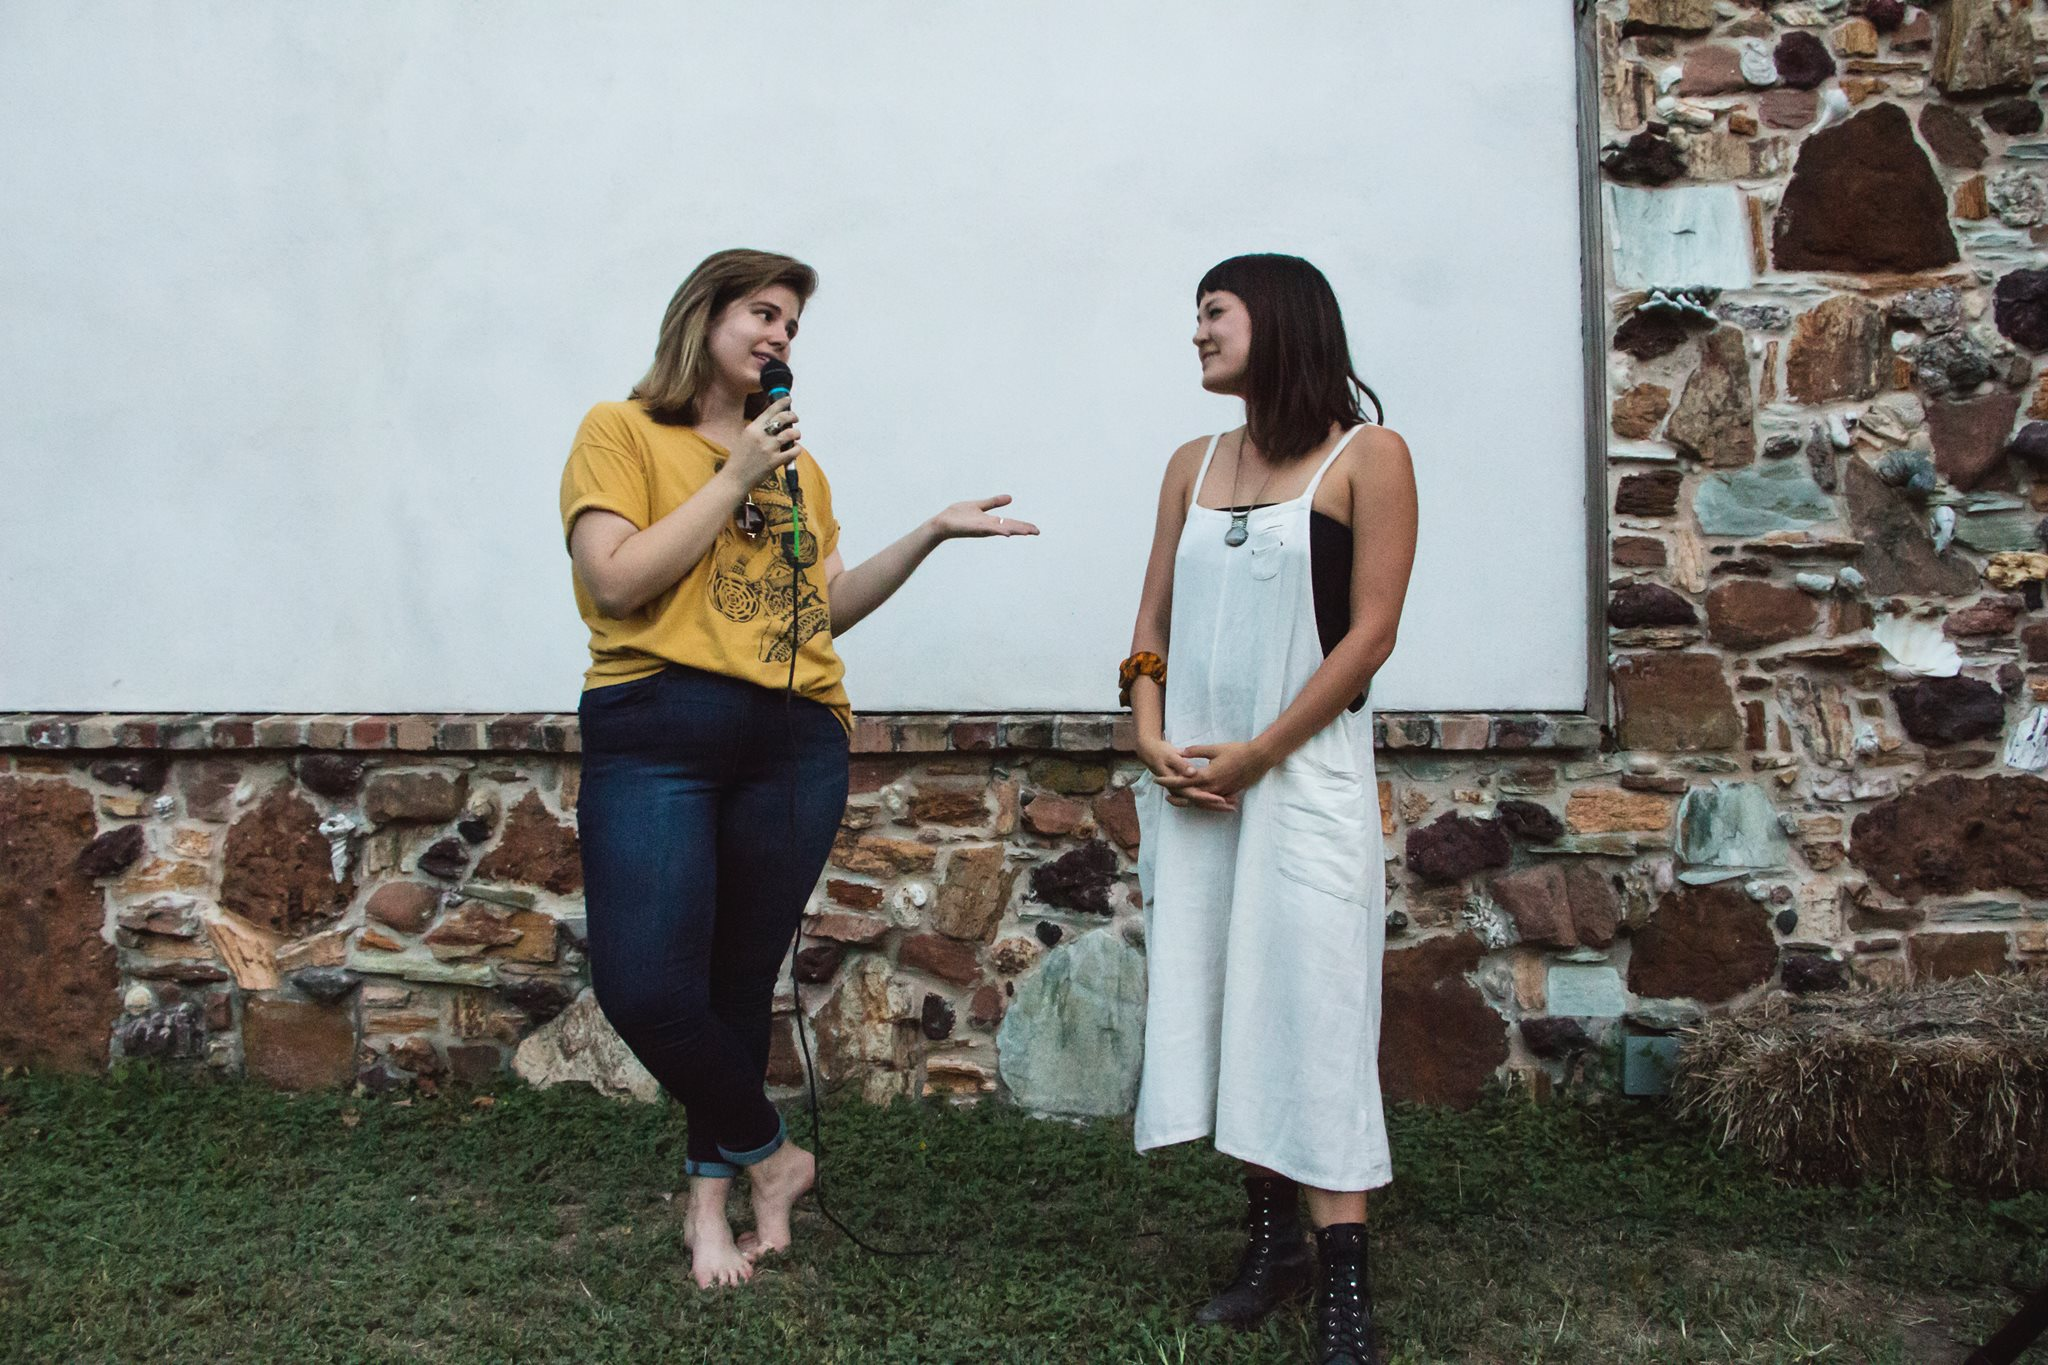 Jane and director Samantha Skinner at the Babes Fest summer film screening. Photo by Tess Cagle